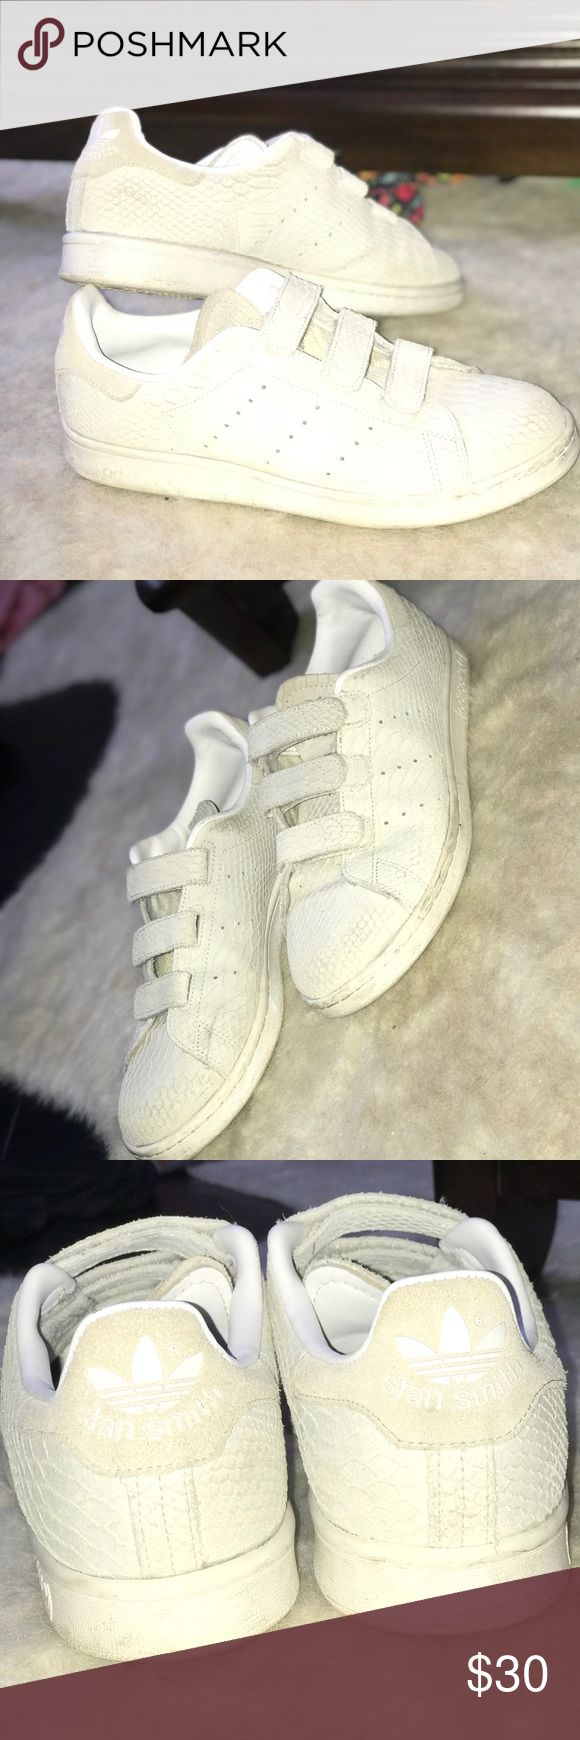 Stan Smith Adidas Suede Snake Skin Velcros normal wear and tear, can be cleaned with a damp rag and soap run big, i am usually a 9.5 in shoes adidas Shoes Sneakers